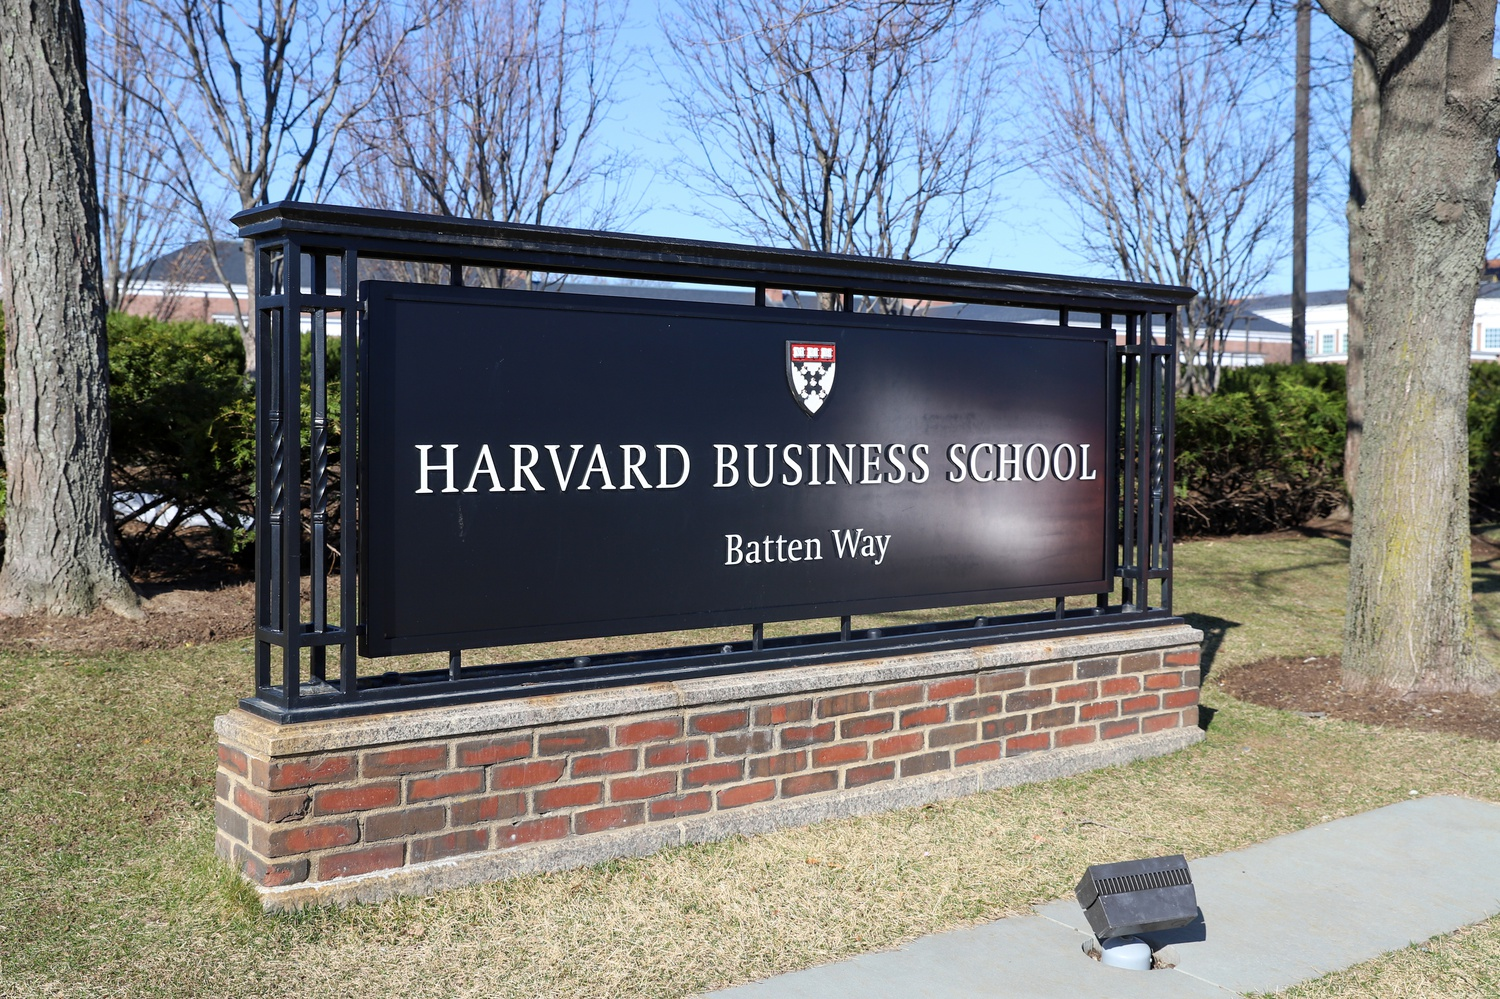 Harvard Business School Online has decided to discount the price of its Credential of Readiness program — CORe, for short — from its usual $2,250 to $450 in wake of the disruptions caused by coronavirus.